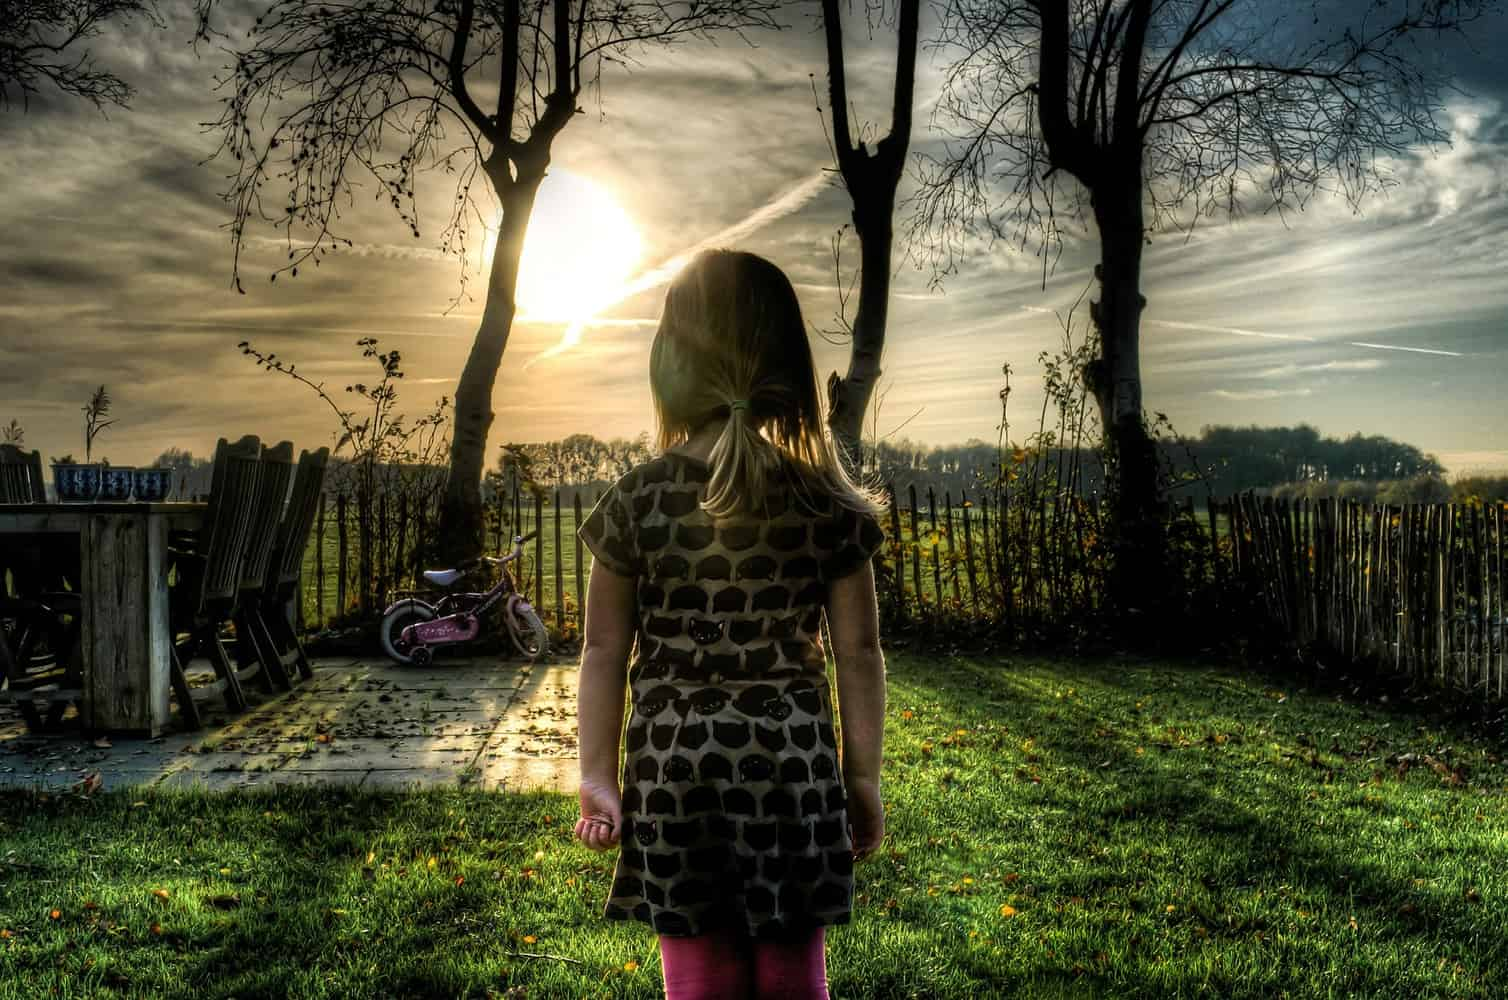 Backyard Safety Tips for Your Kids